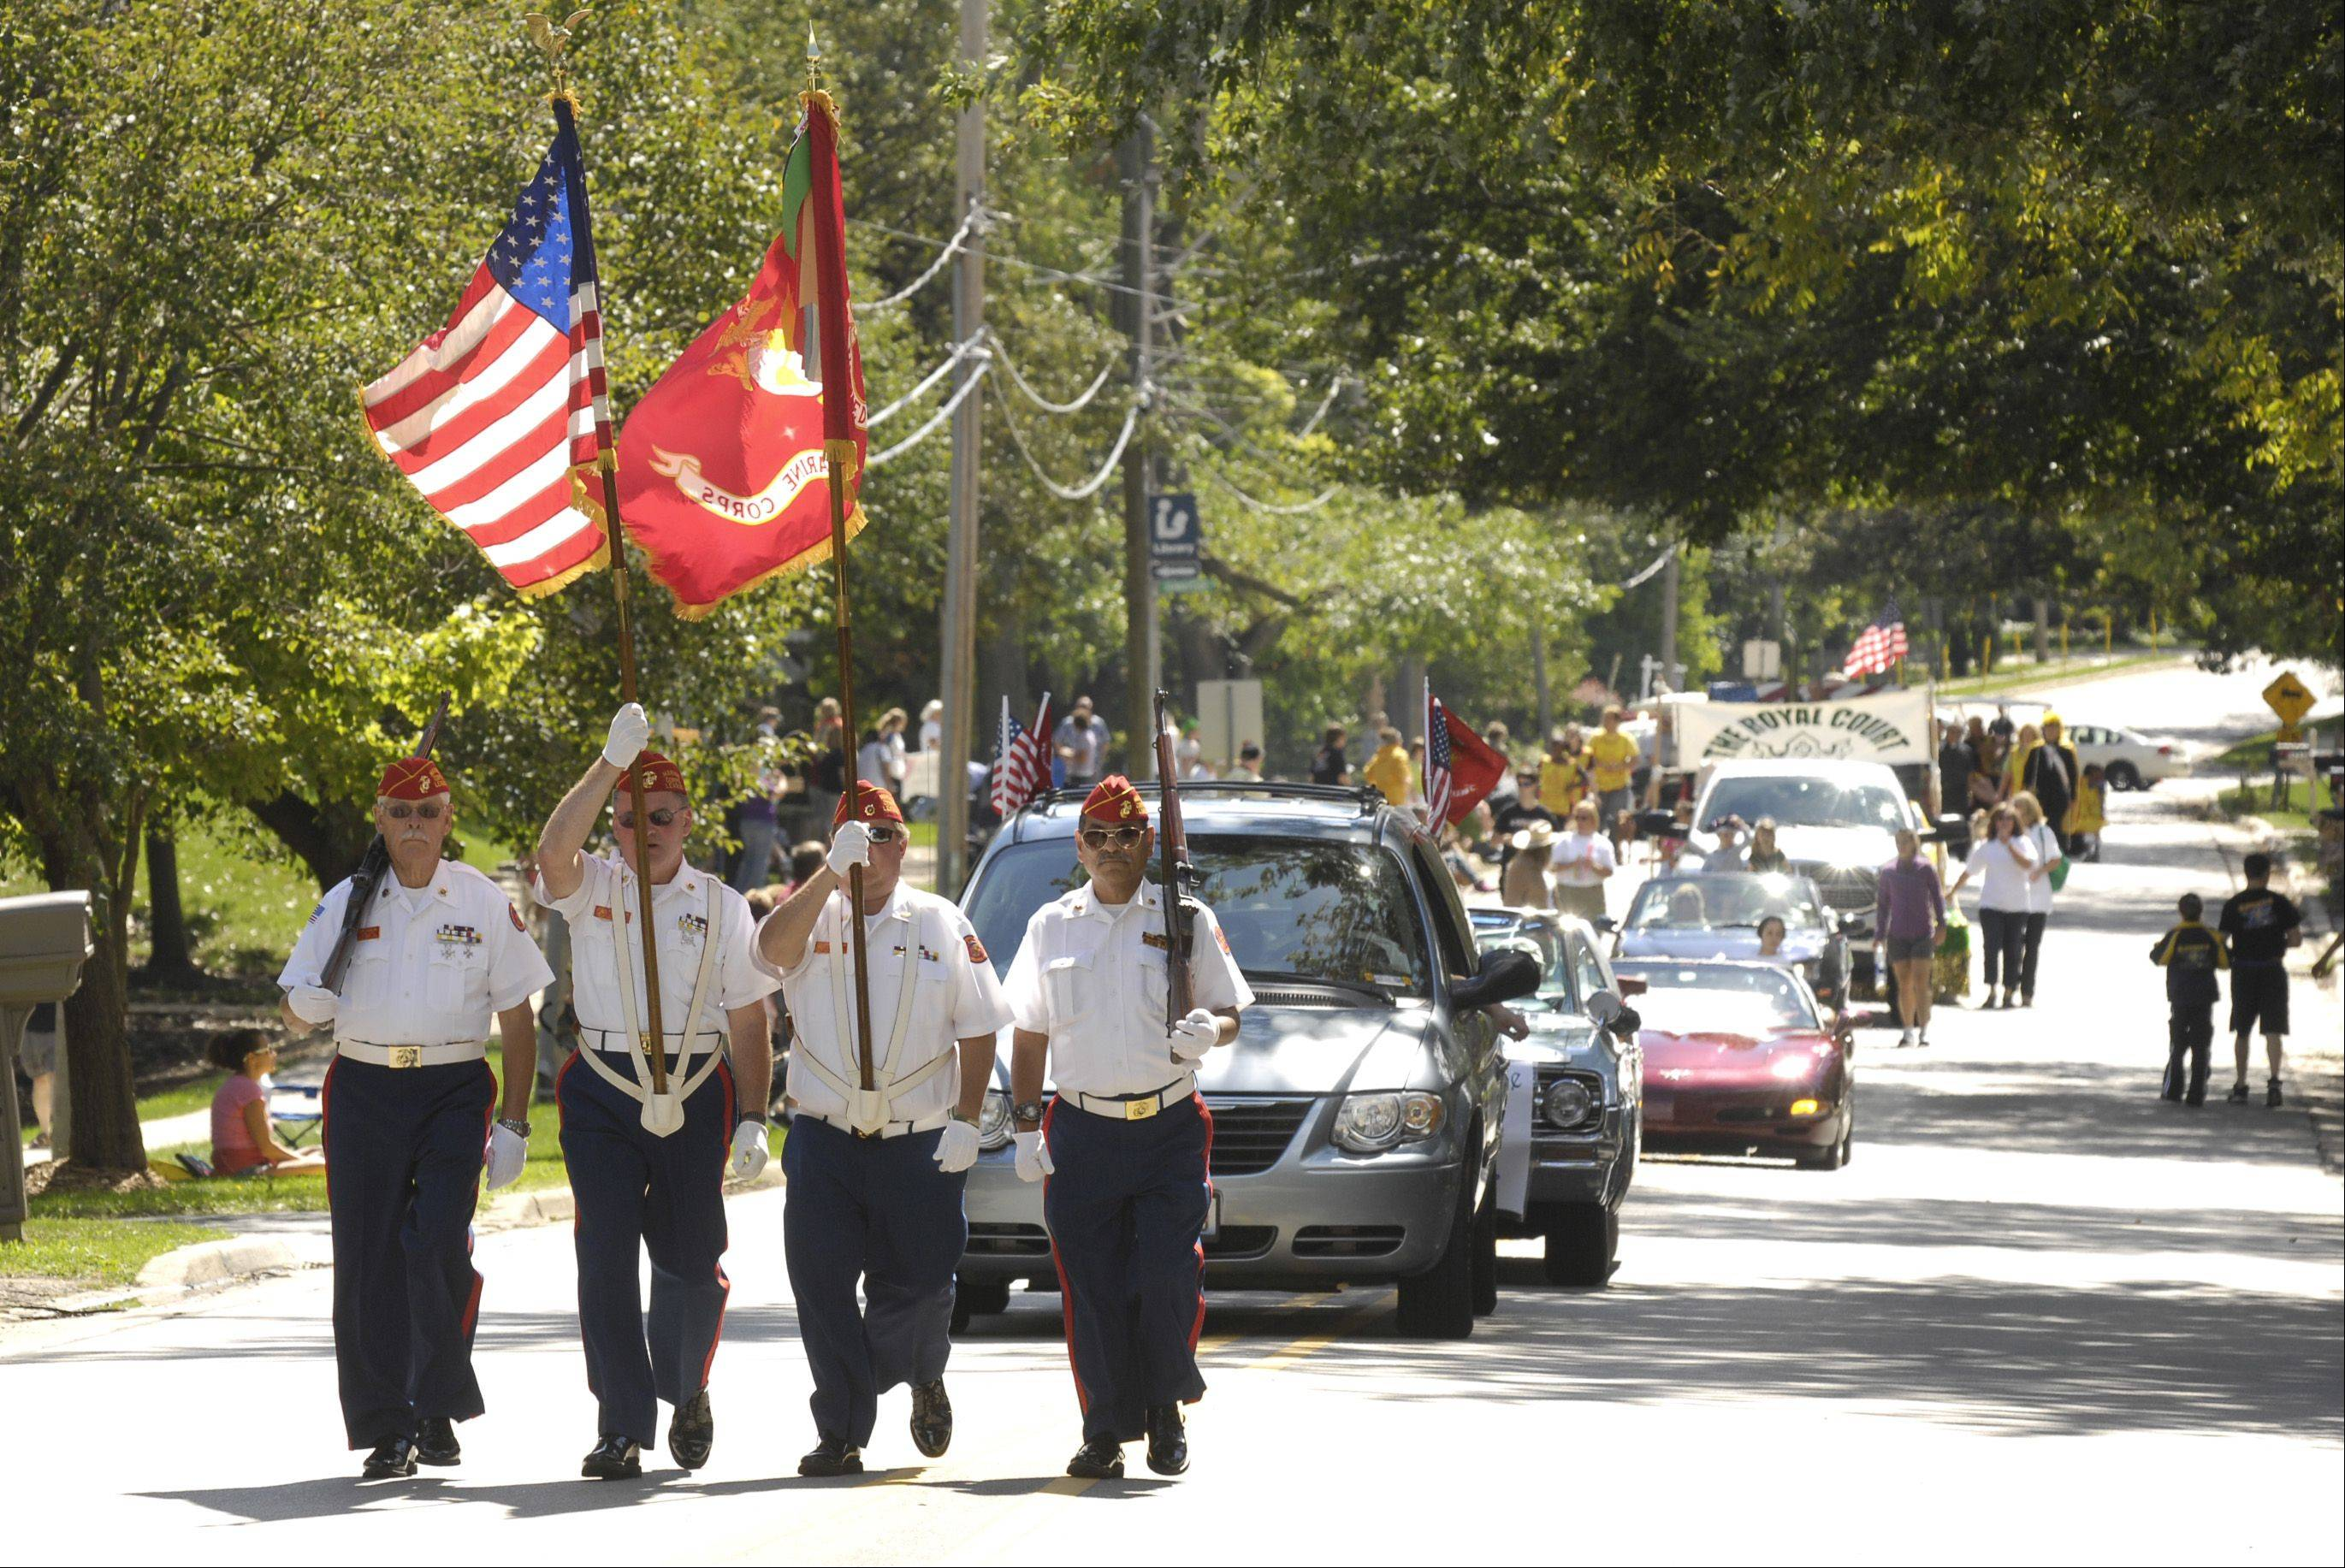 Members of the DuPage County Marines, Marine Corps League march in Winfield's Good Old Day festival parade Sunday.